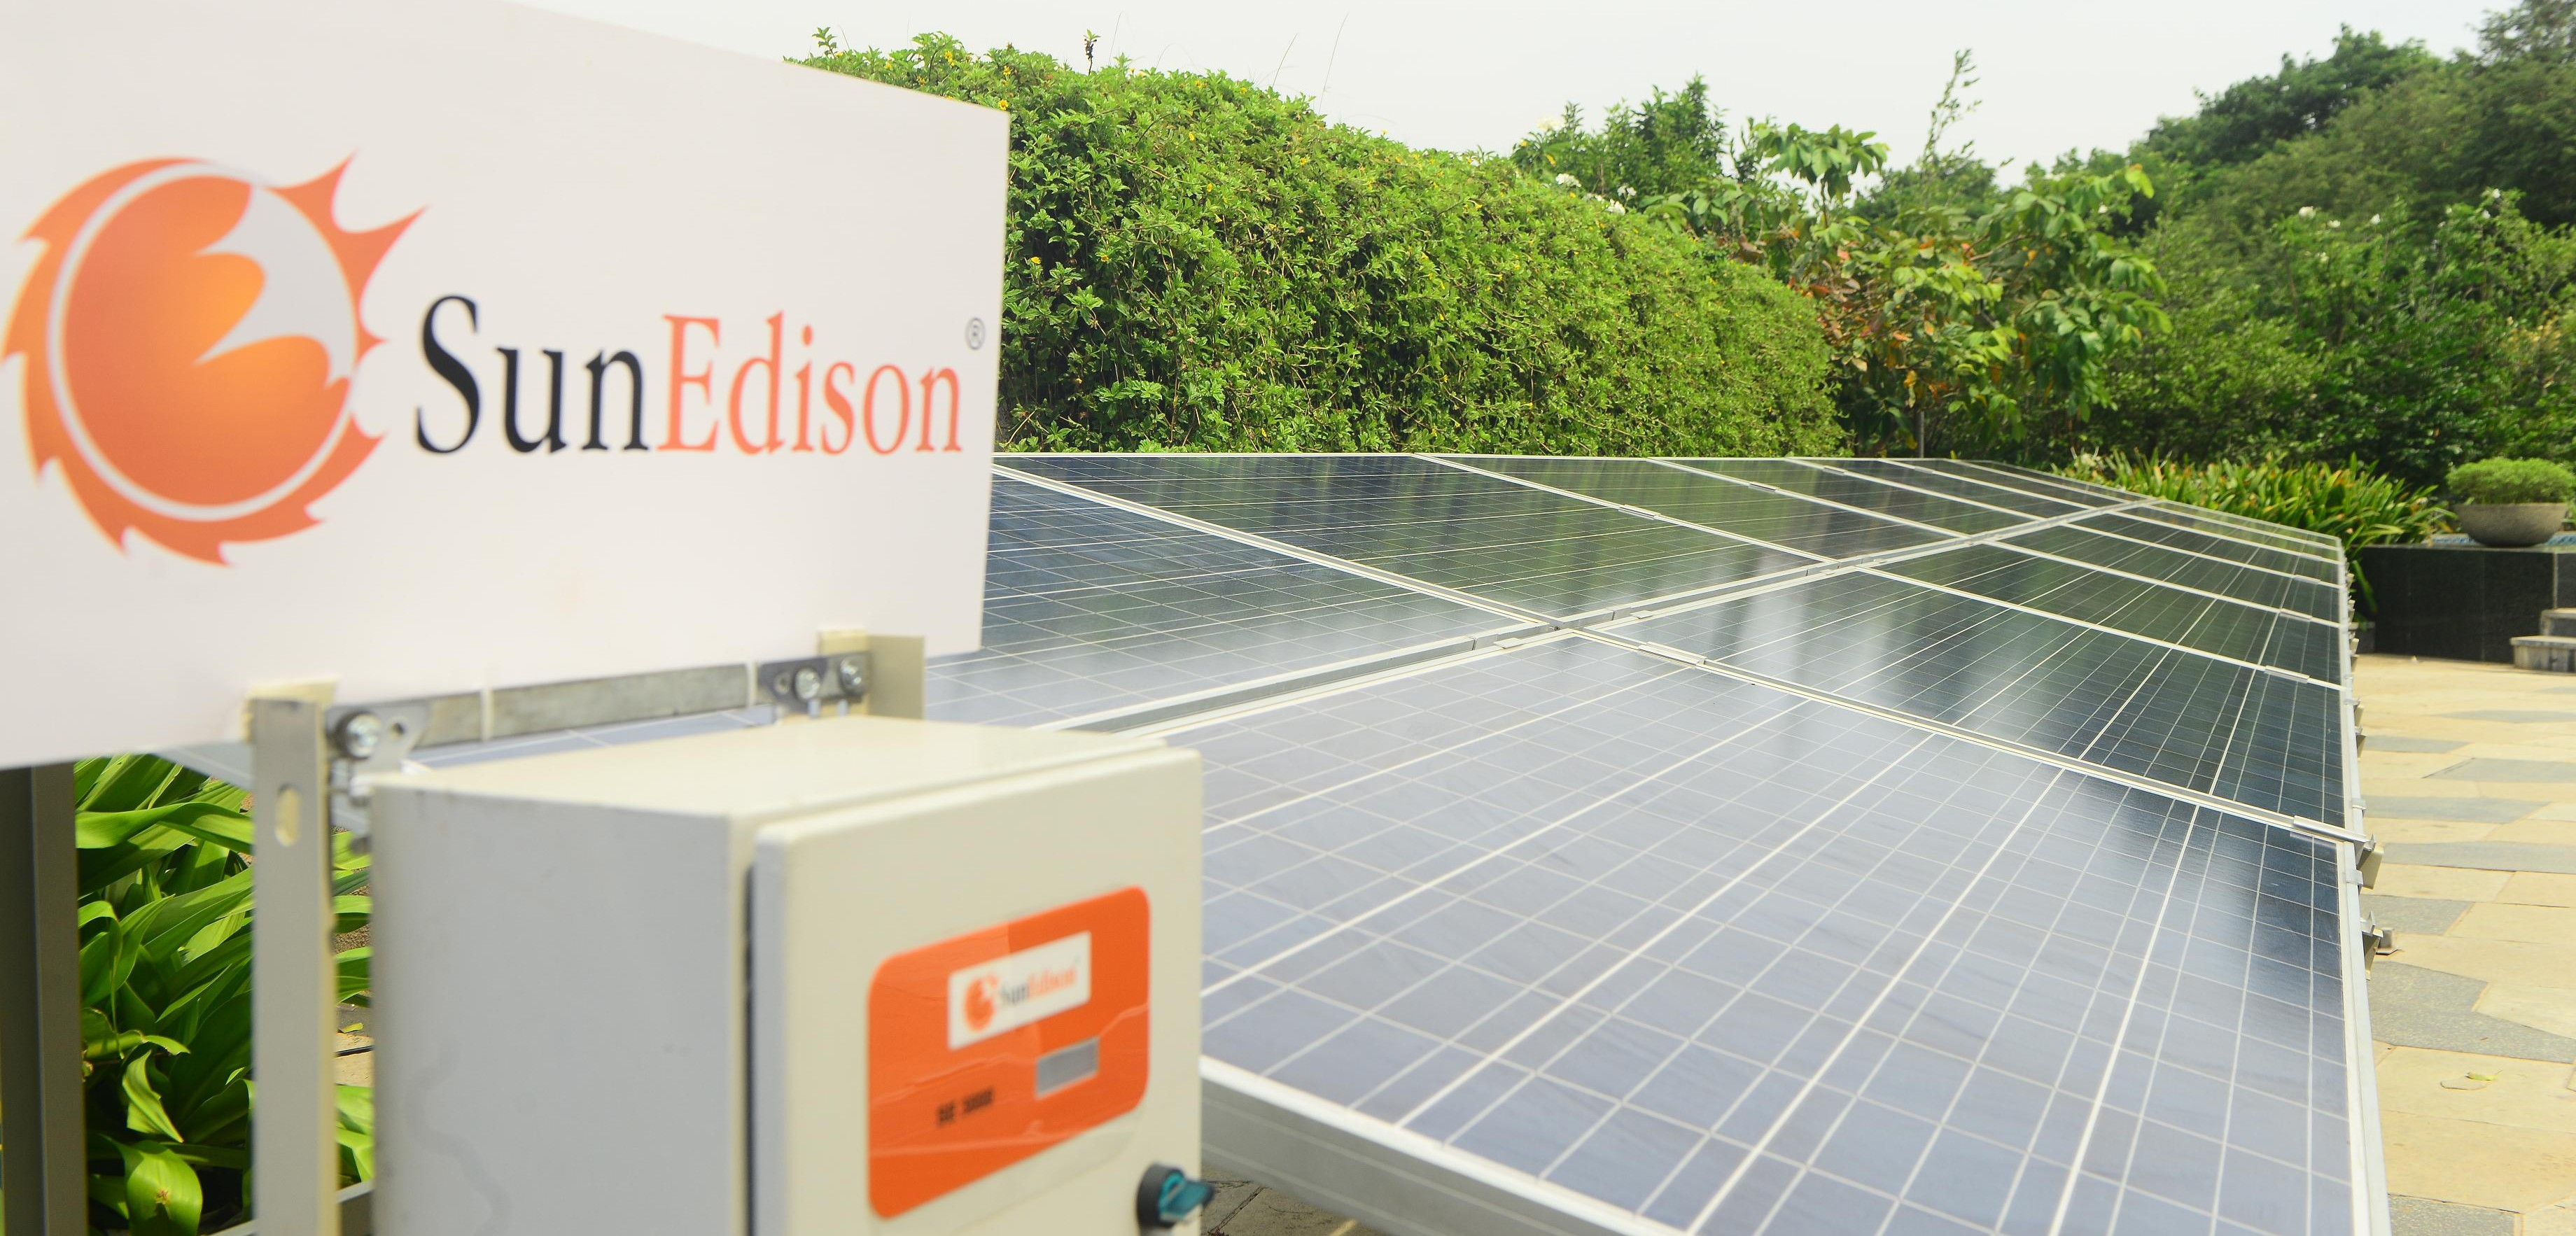 SunEdison-water-pumps